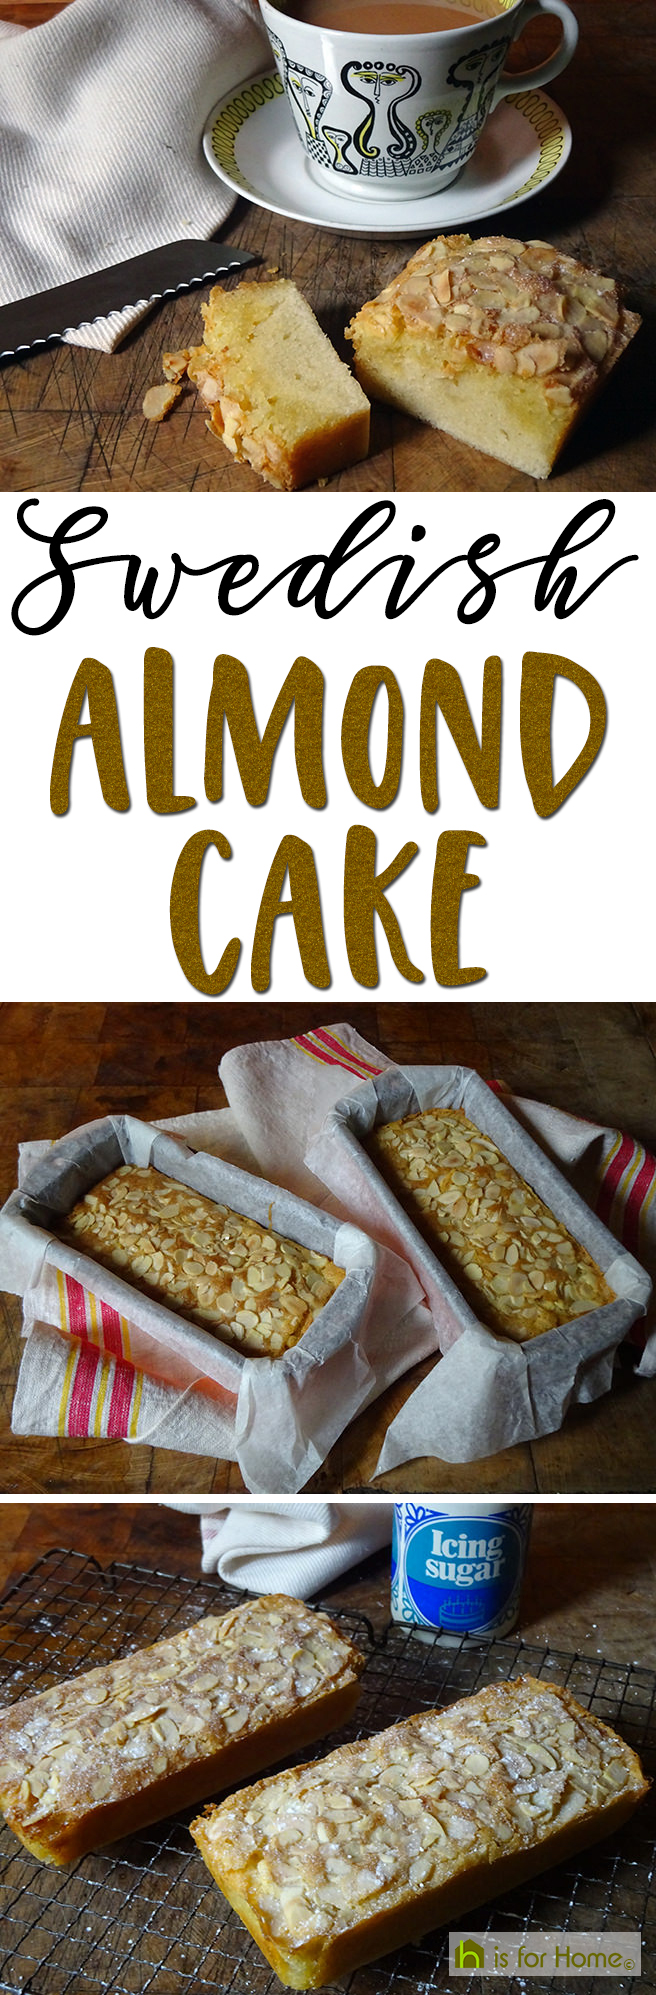 This week, I made this Swedish almond cake using a @bakingbar family recipe… absolutely delicious!  #recipe #cake #fdbloggers #TeaTime